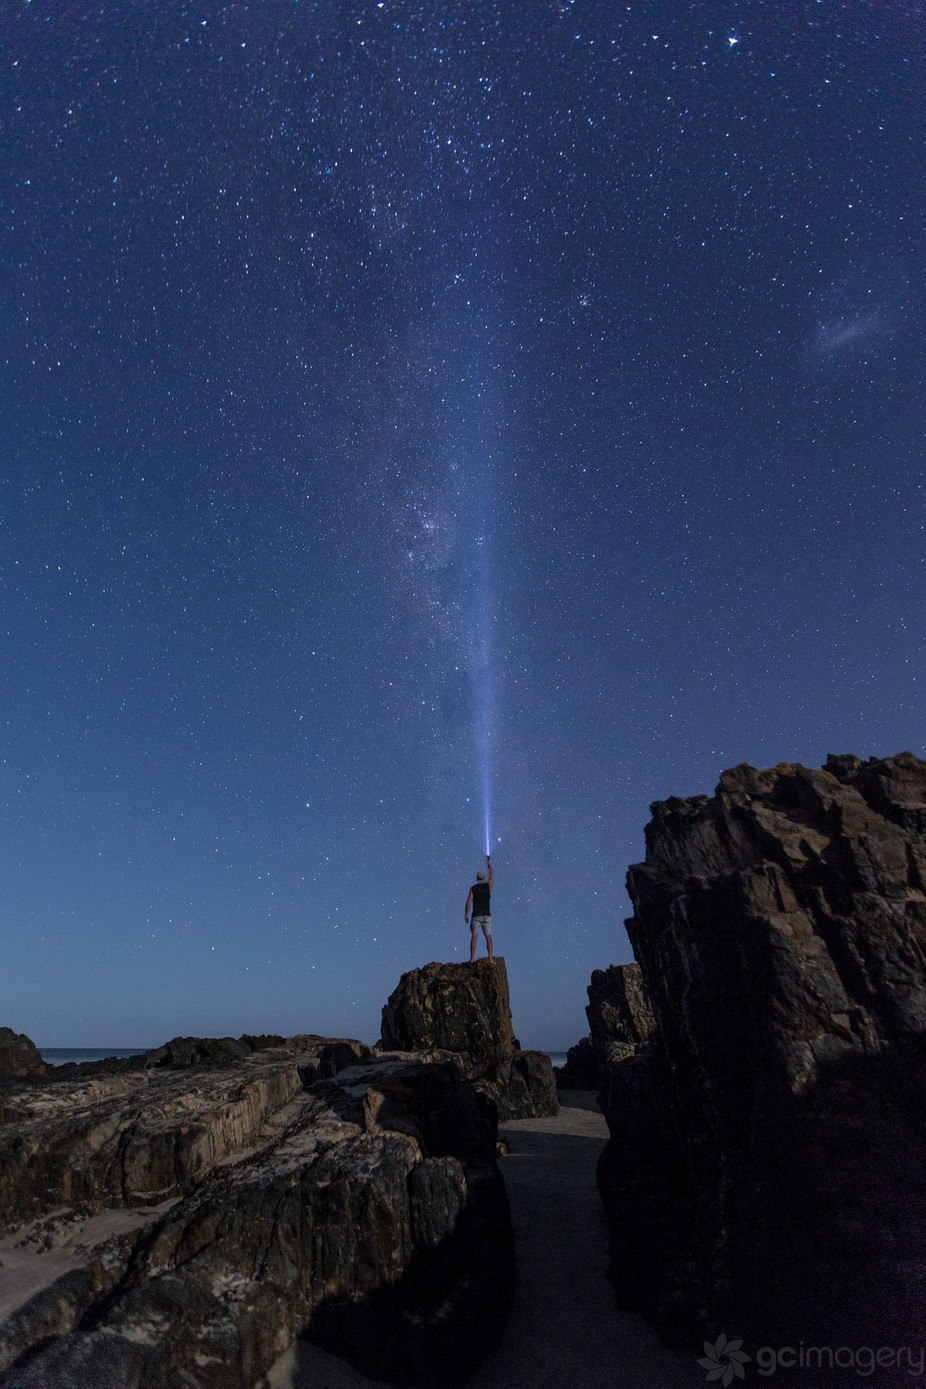 Reach for the stars by Gareth_Carr - Rule Of Seconds Photo Contest vol1